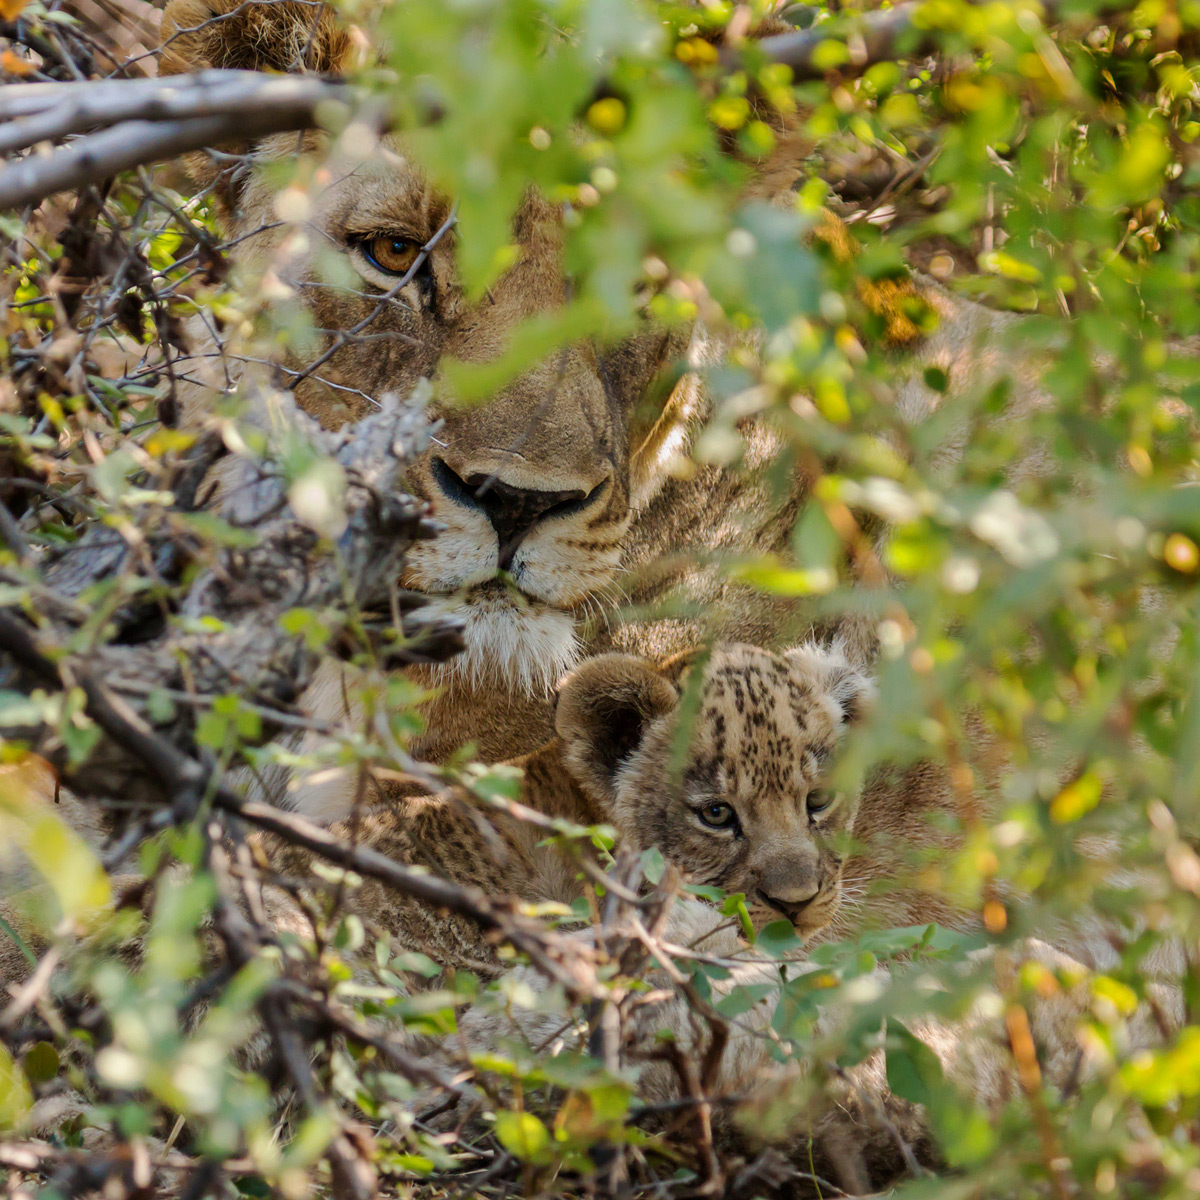 A glimpse of a lioness and her cub hiding deep within a bush in Madikwe Game Reserve, South Africa © Alan Smith